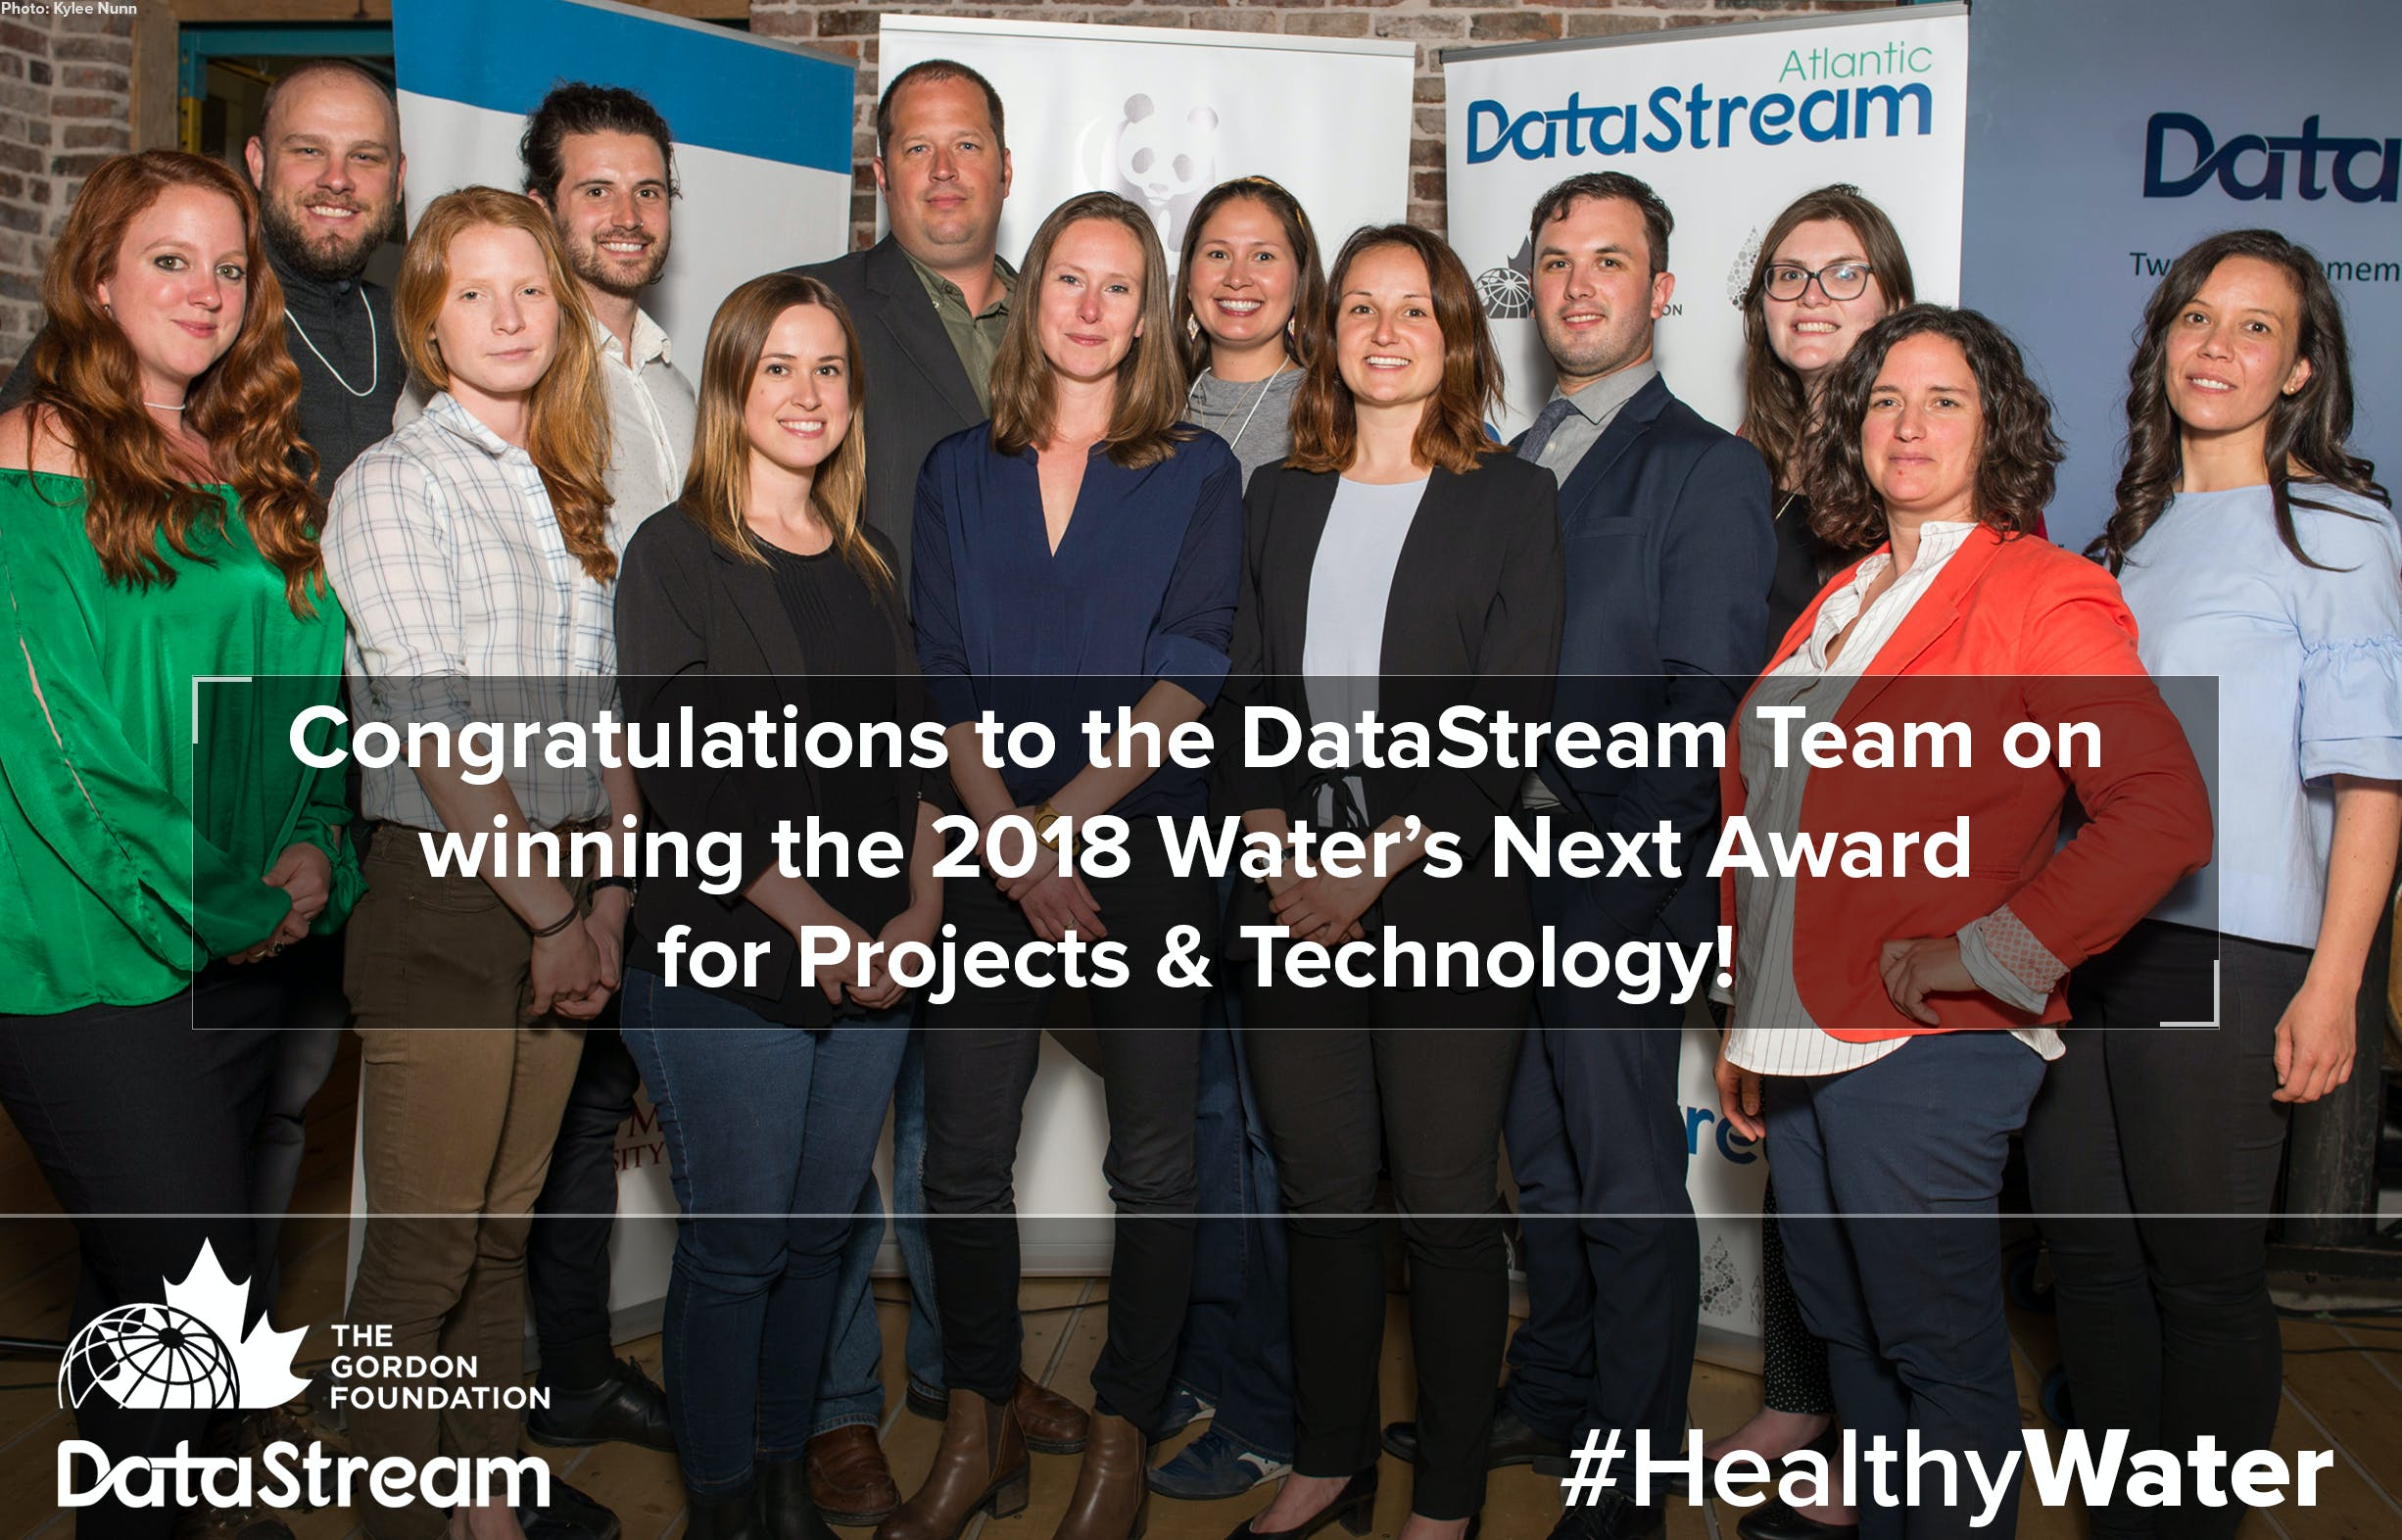 Members of WWF, the Atlantic Water Network, the PEI Watershed alliance, and the Gordon Foundation at the Water's Next Award with Congratulations to the DataStream Team on winning the 2018 Water's Next Award for Projects & technology written over top